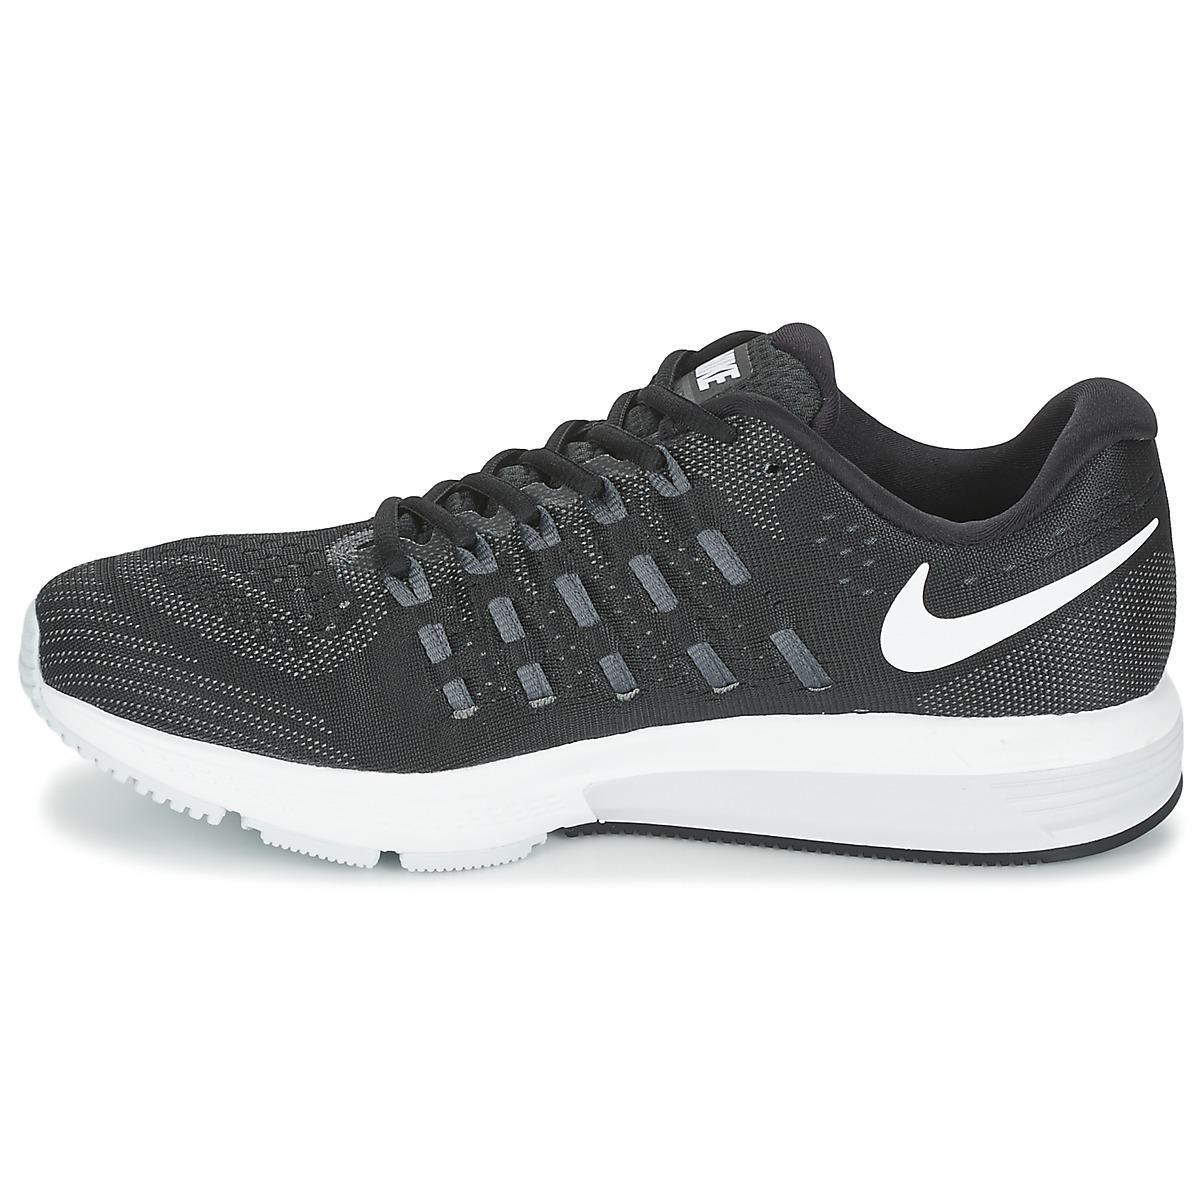 Nike Air Zoom Vomero 11 Men's Running Trainers In Black for Men